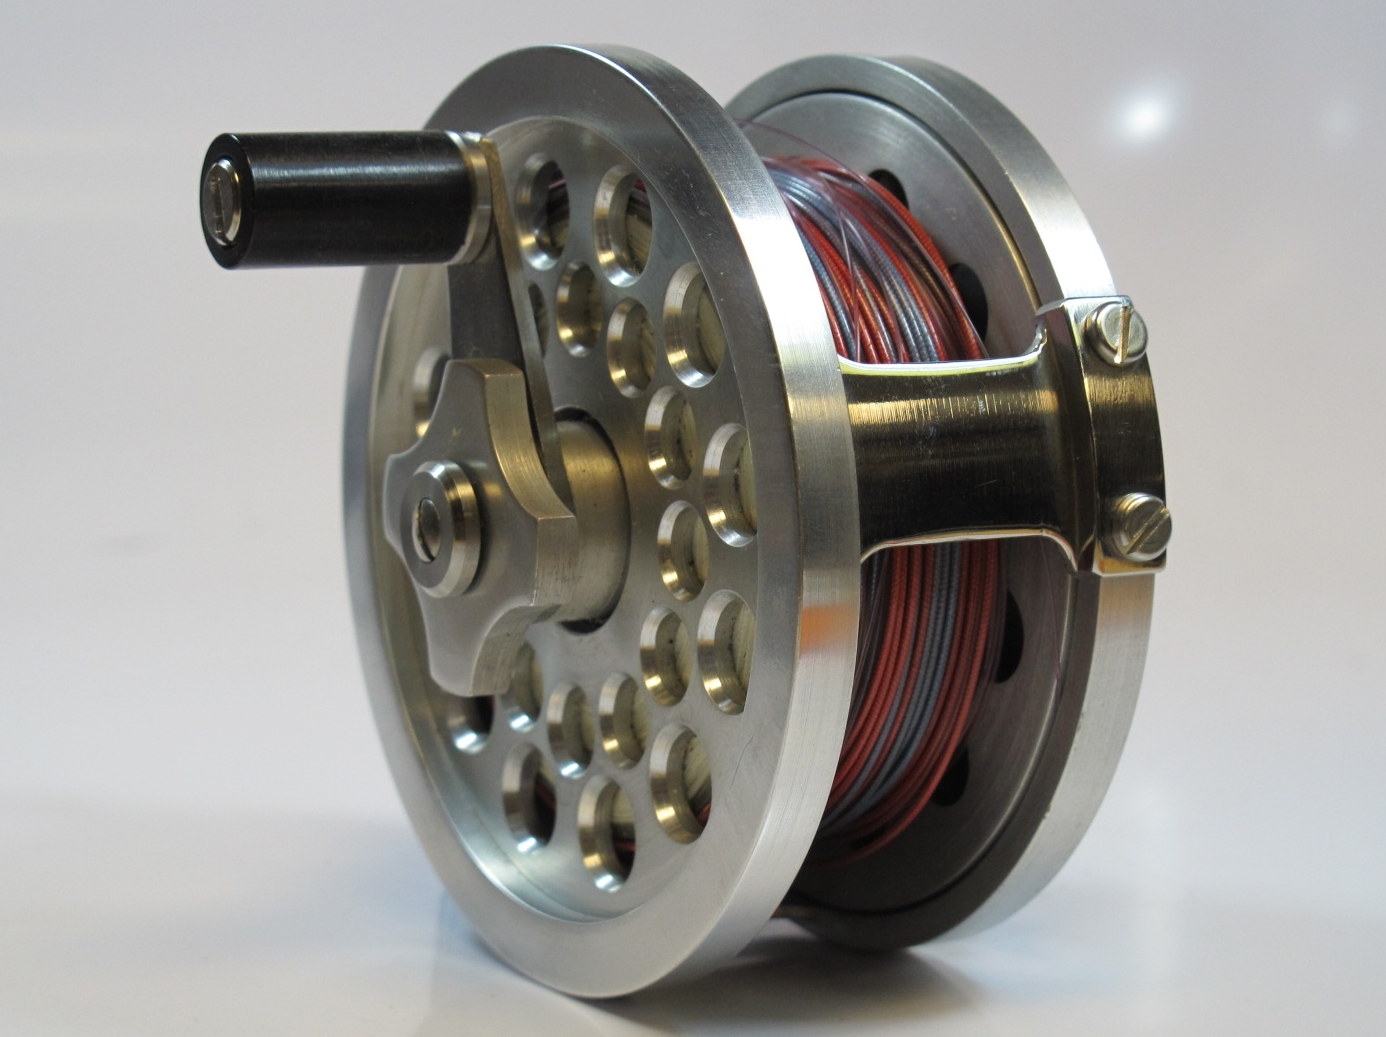 Antique fly fishing reel for Antique fishing reels